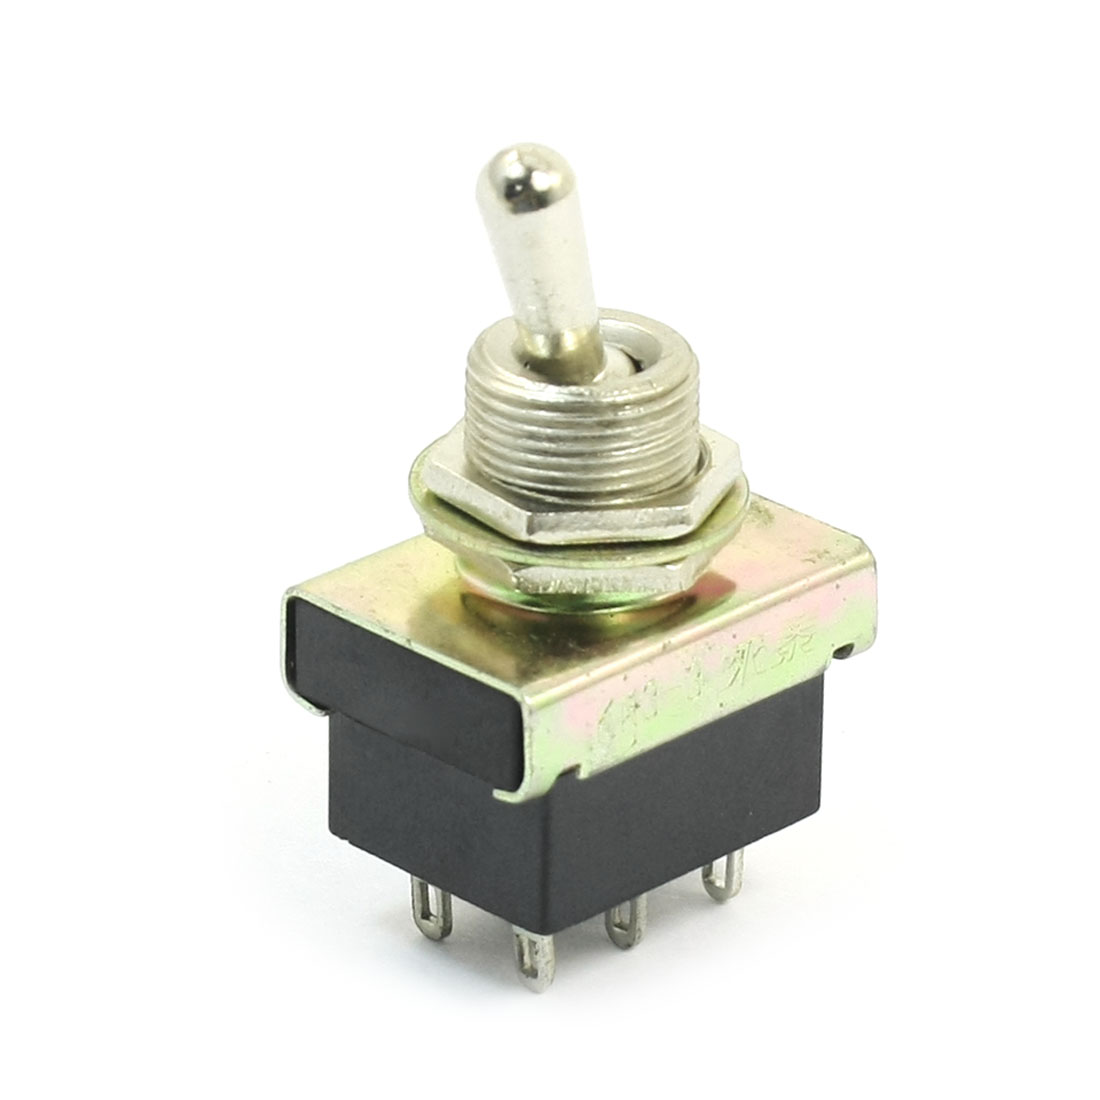 AC 220V 3A 2PDT ON-OFF 2 Positions 6 Pin Latching Toggle Switch KN3-3 Black